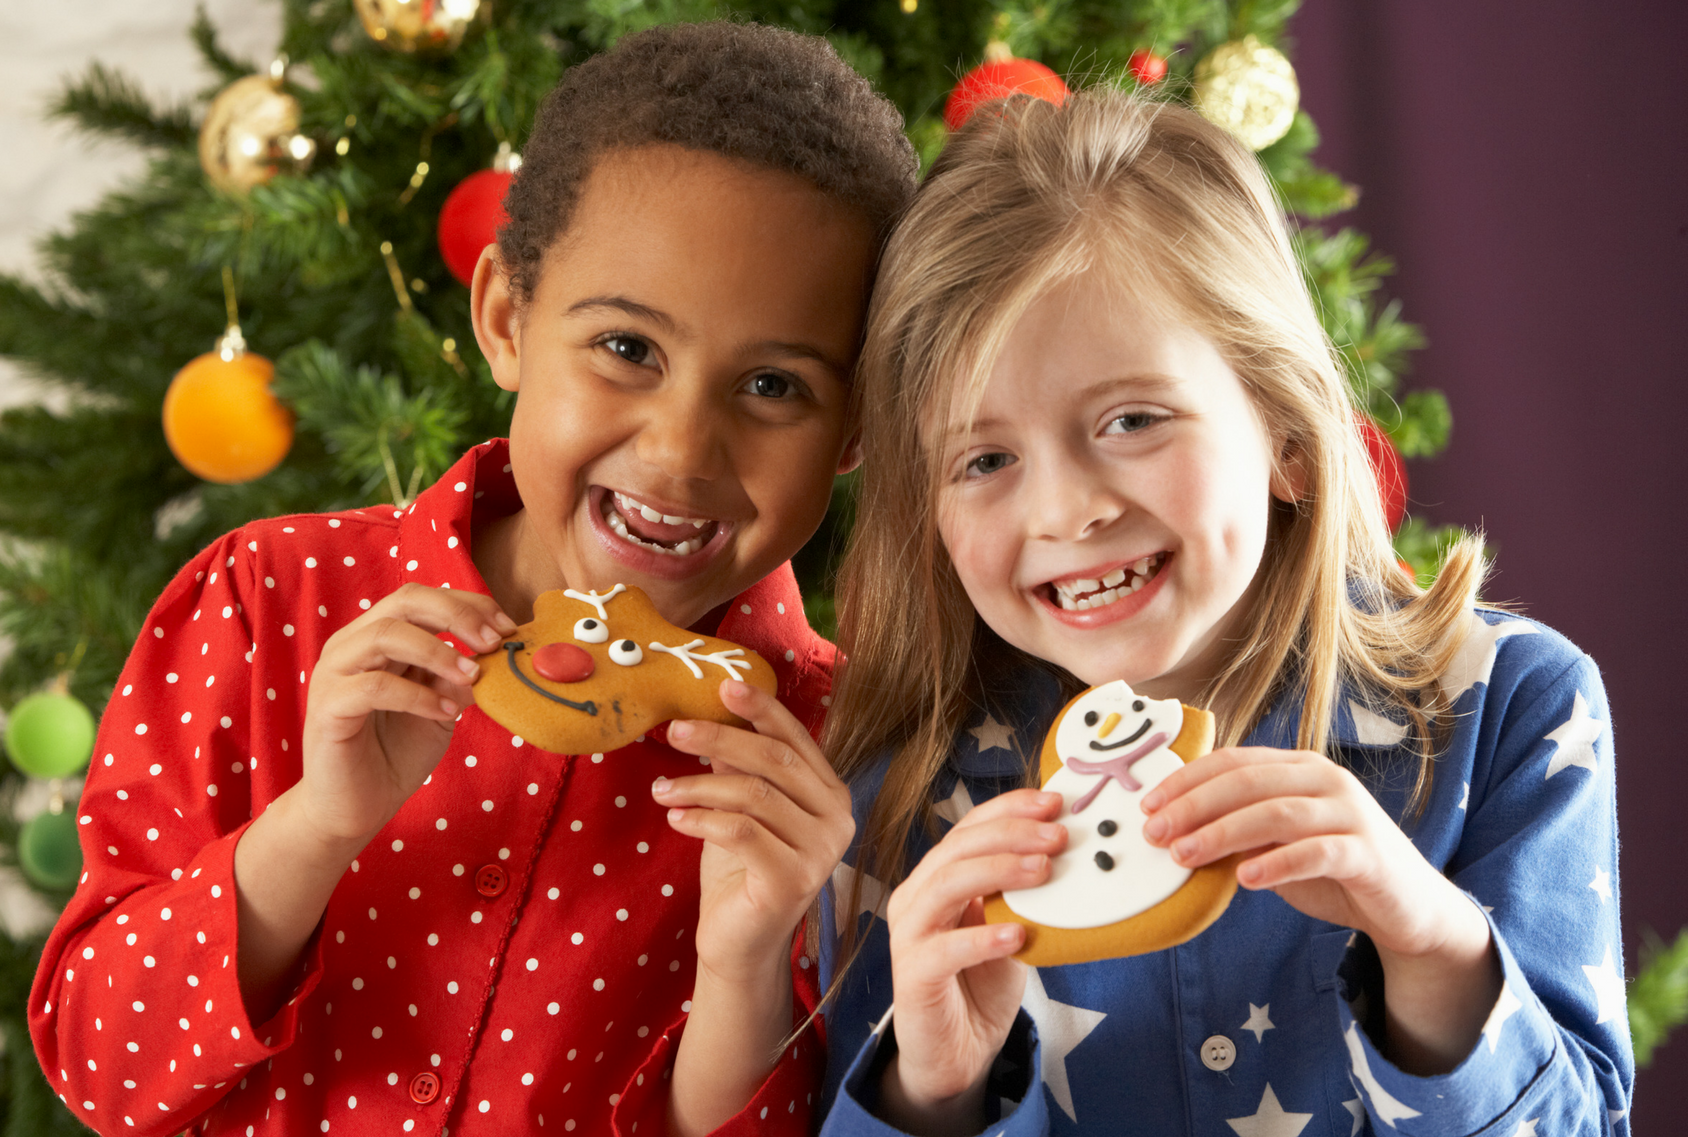 Children eating cookies